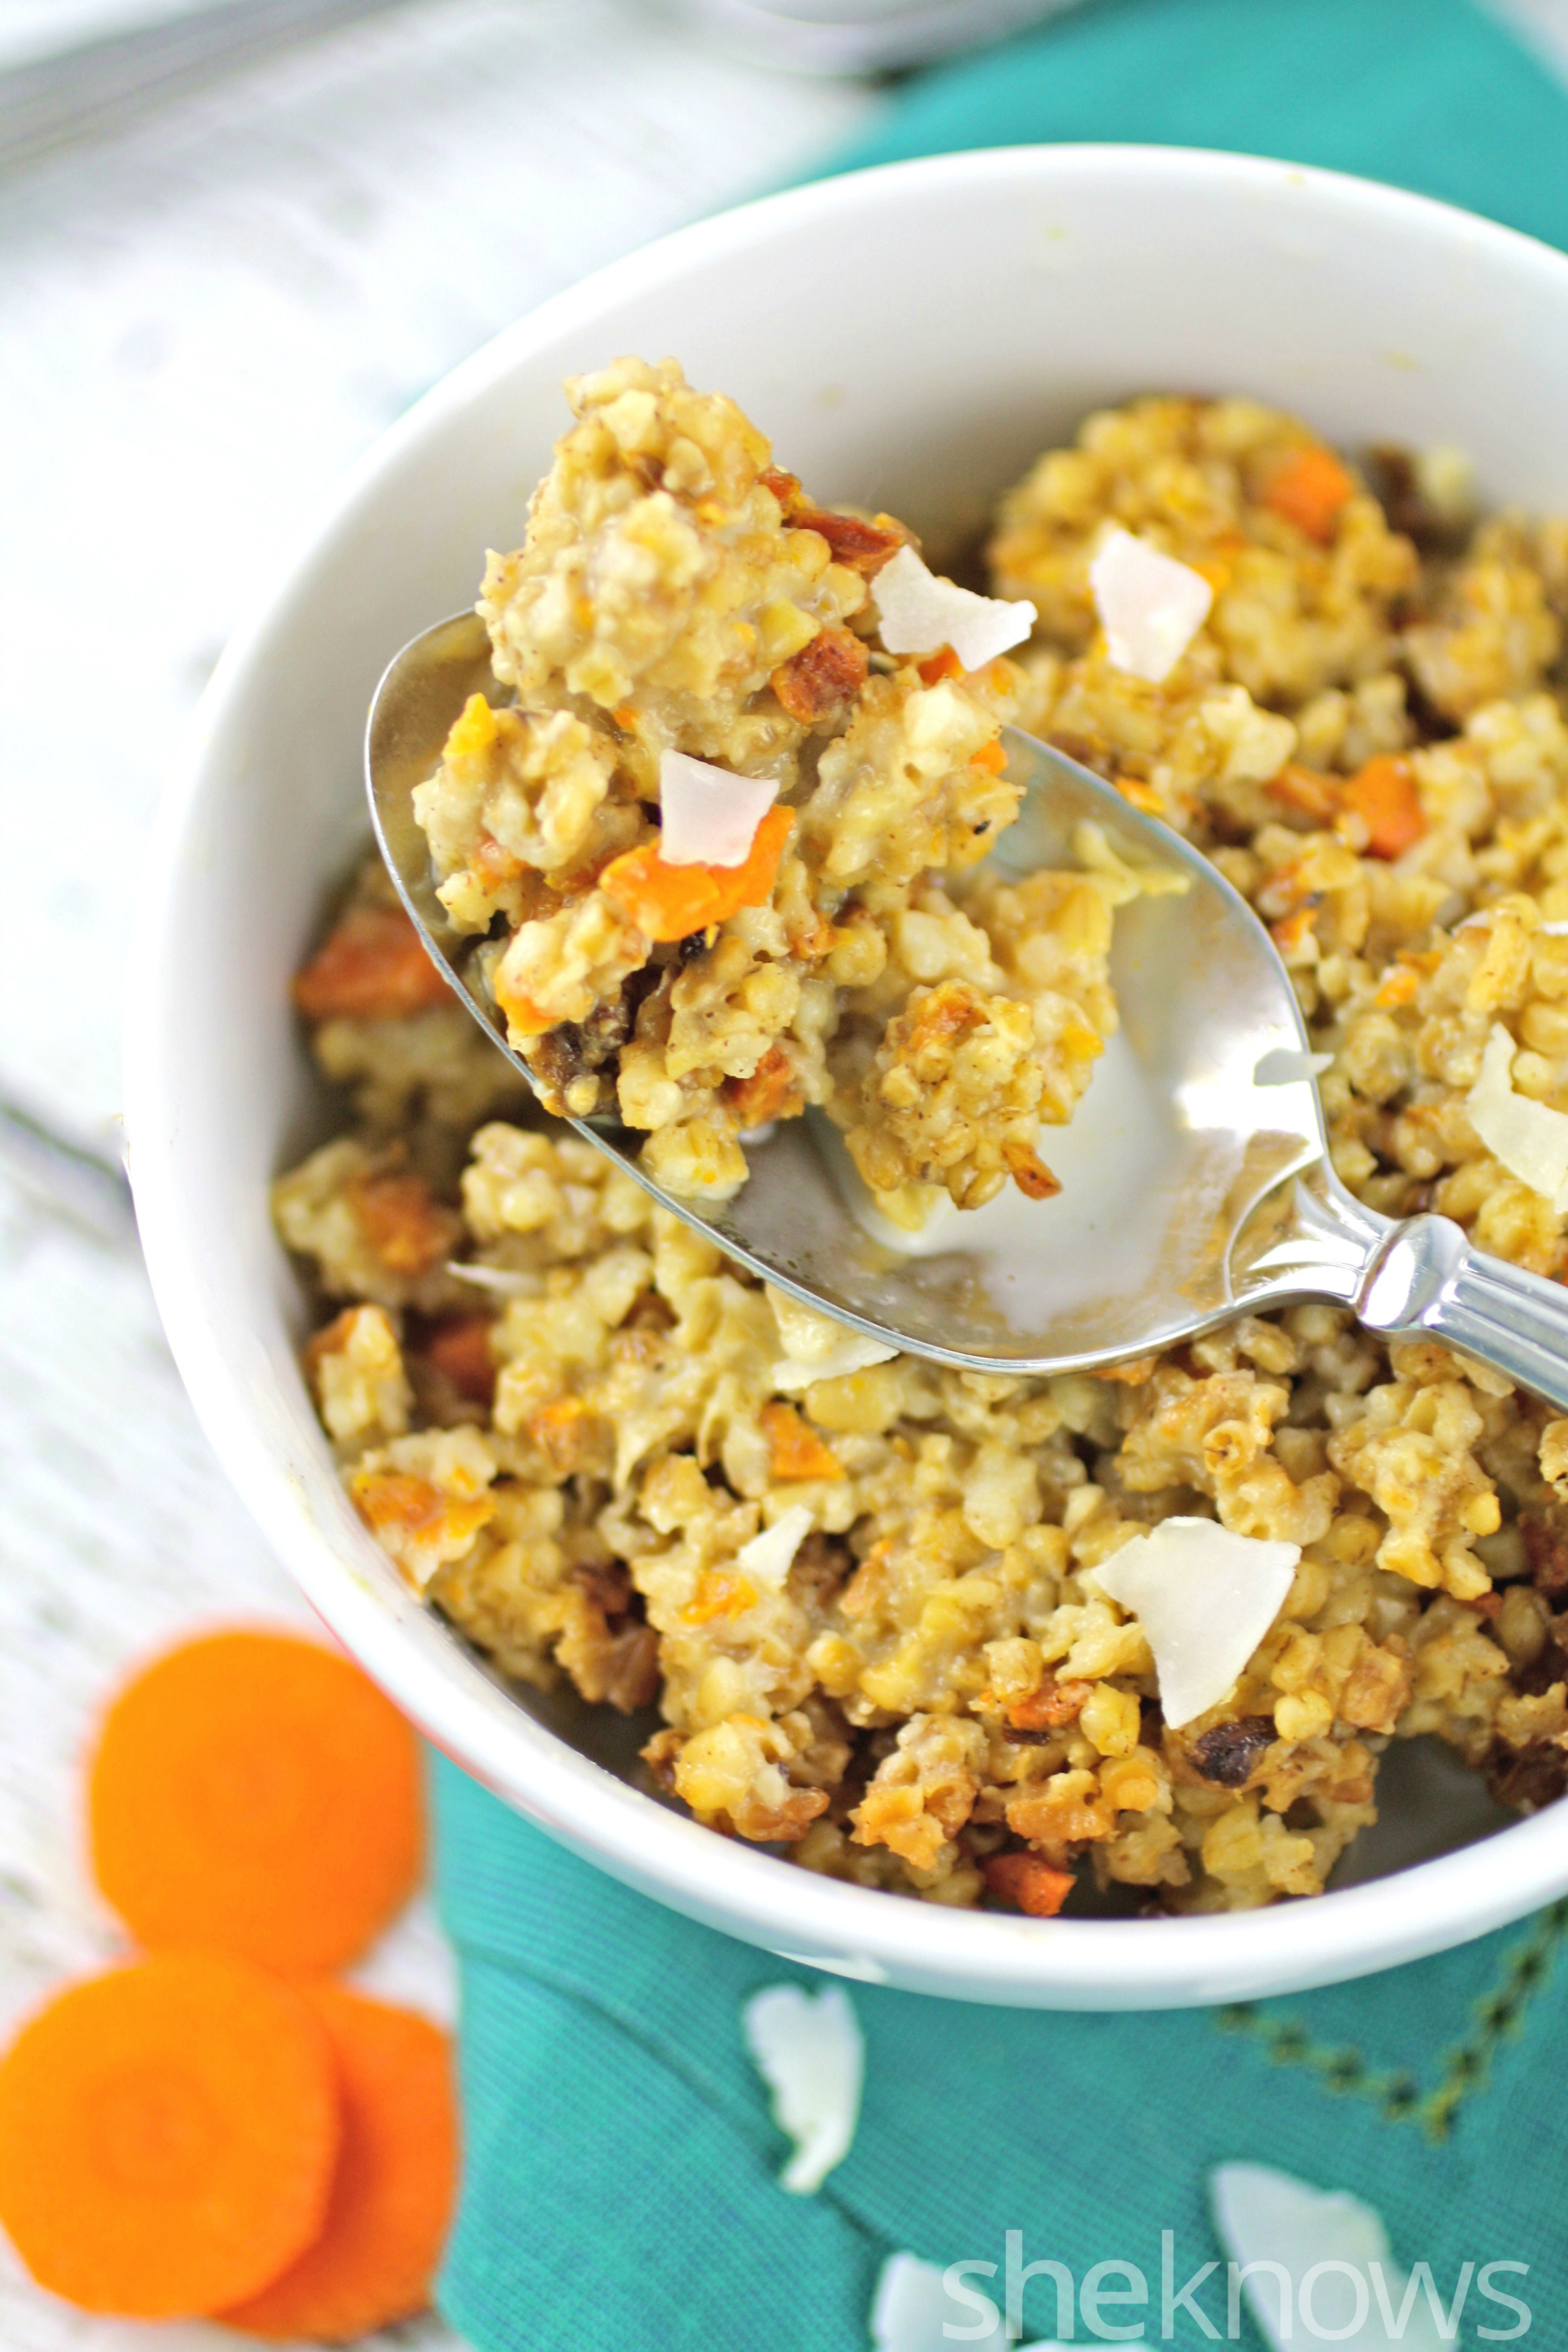 Wake up to slow cooker overnight carrot and coconut oats with maple syrup